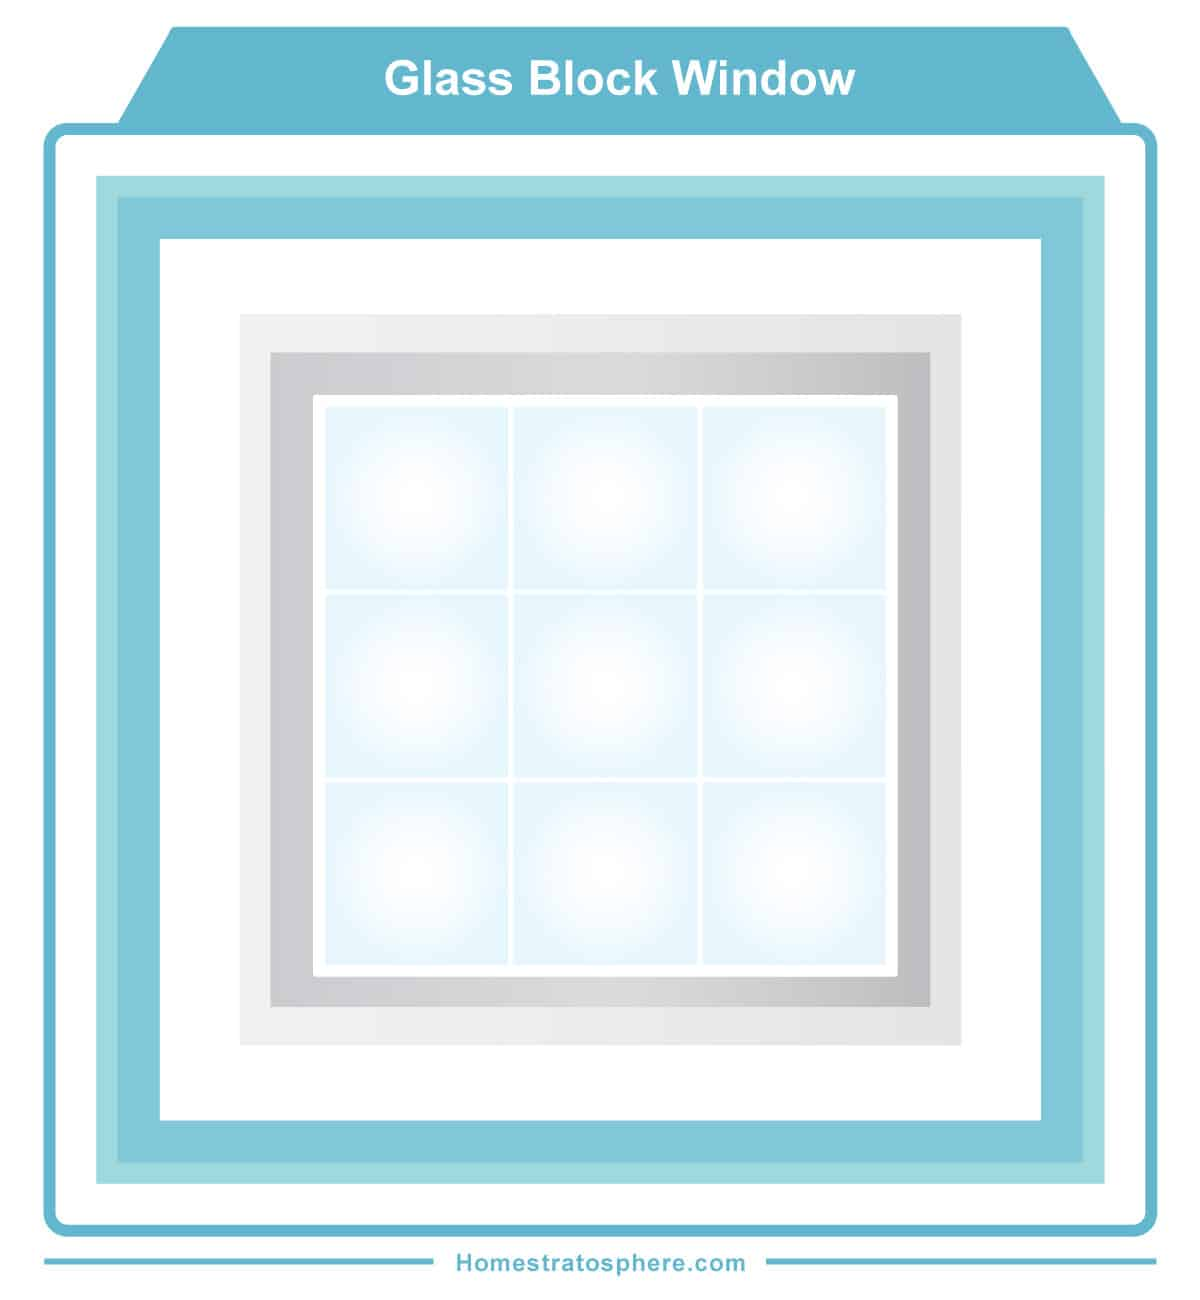 Glass Block Window diagram